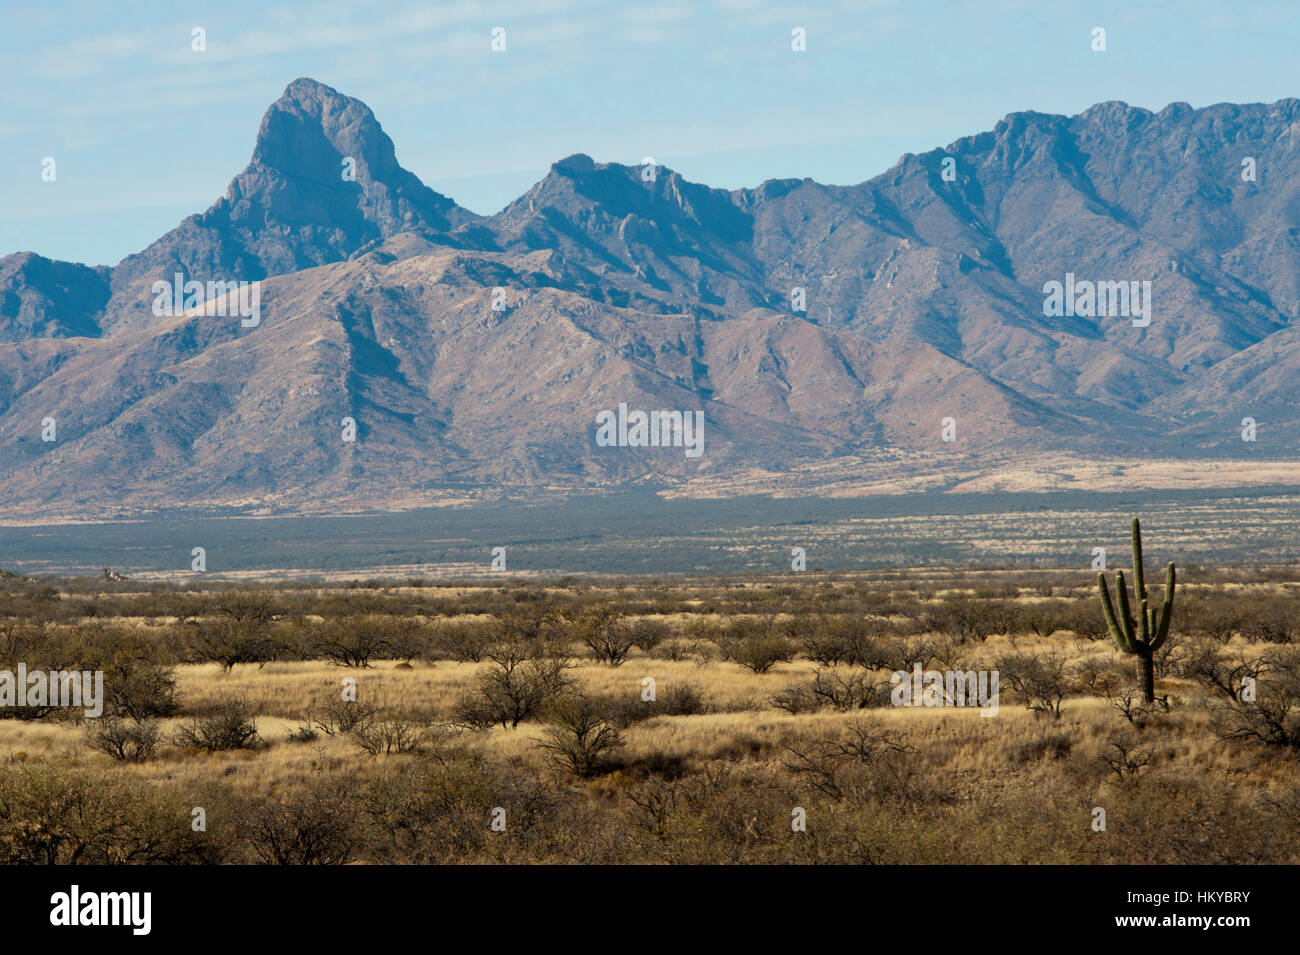 Plains before the center of the world mountain of the Tohono Oodham Indian Nation with a Lone Saguaro cactus in - Stock Image